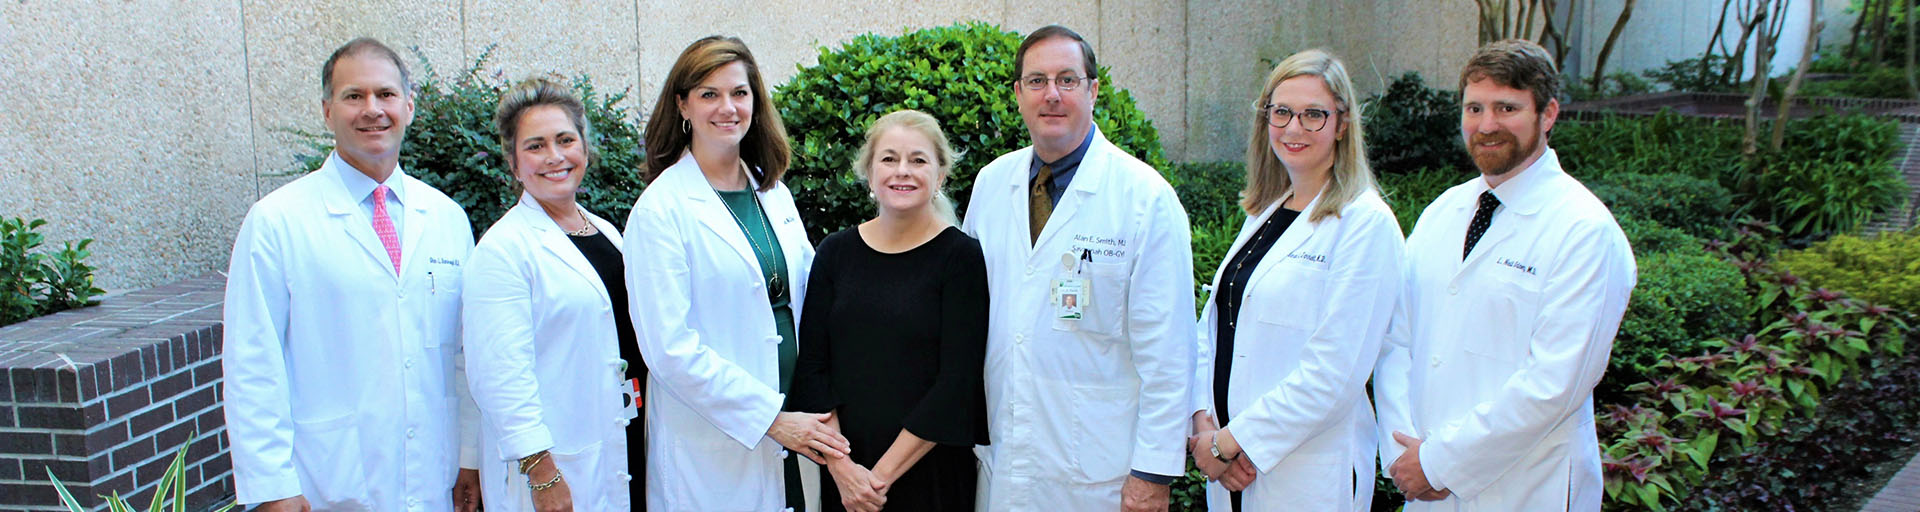 Group photo of the doctors at Savannah OBGYN